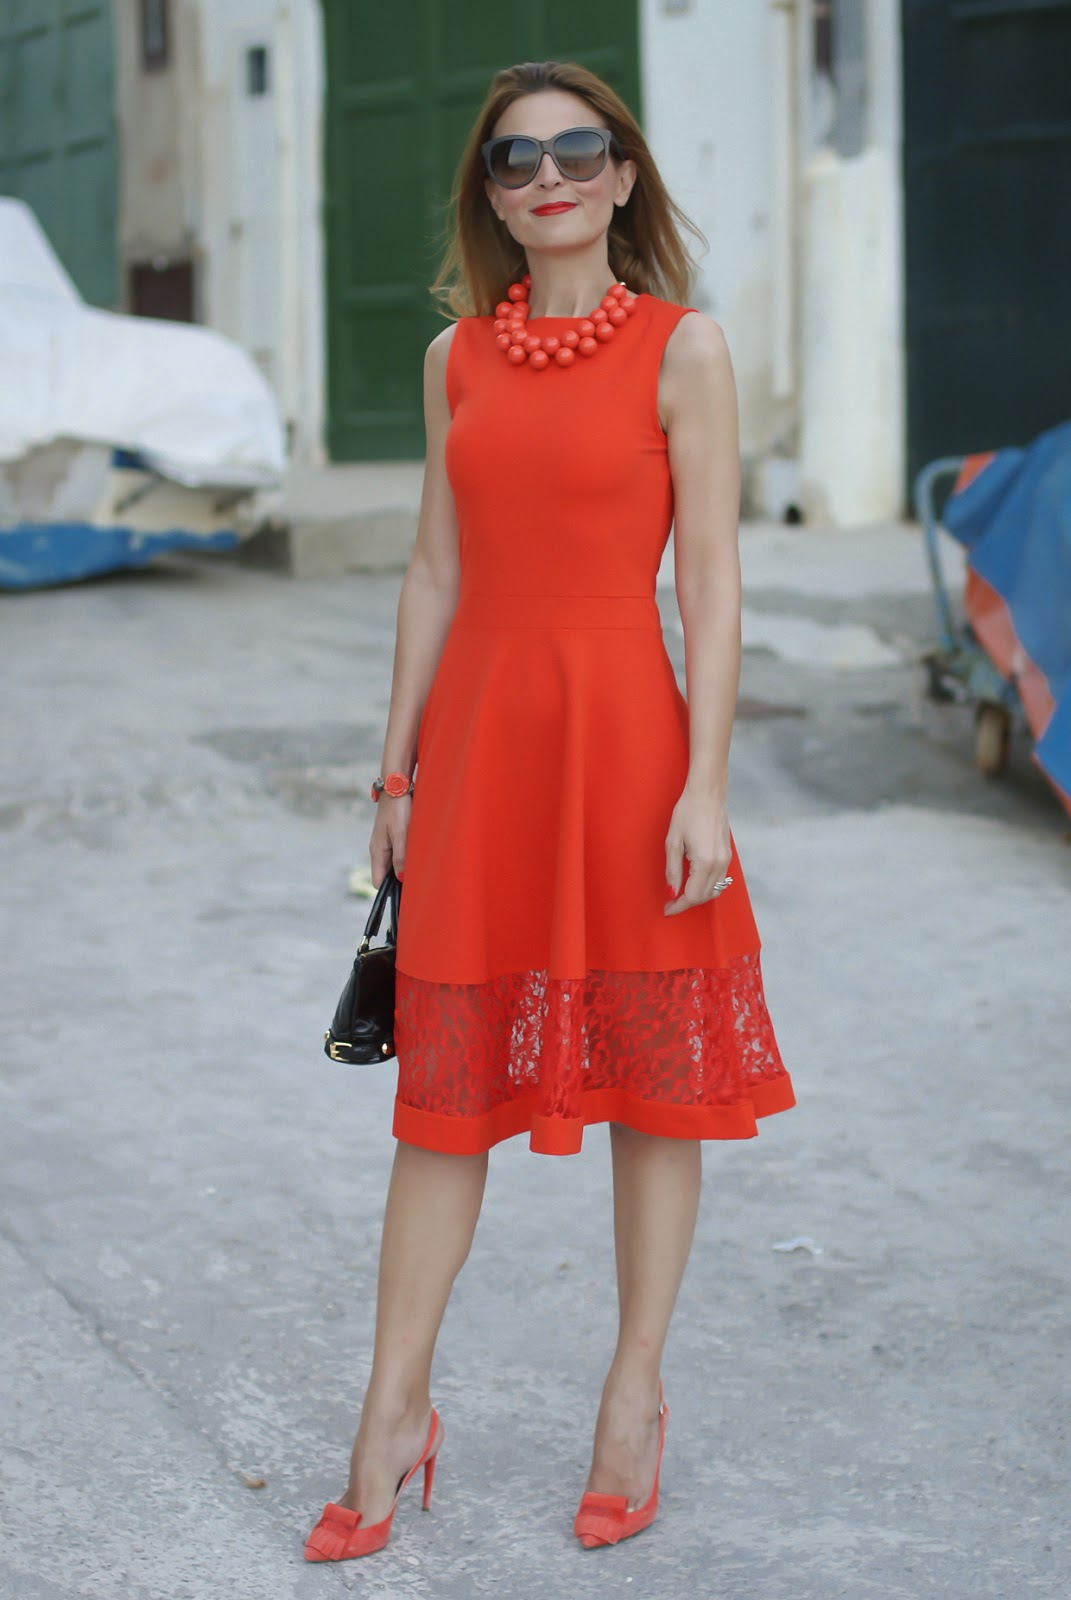 Gucci coral dress on Fashion and Cookies fashion blog, fashion blogger style